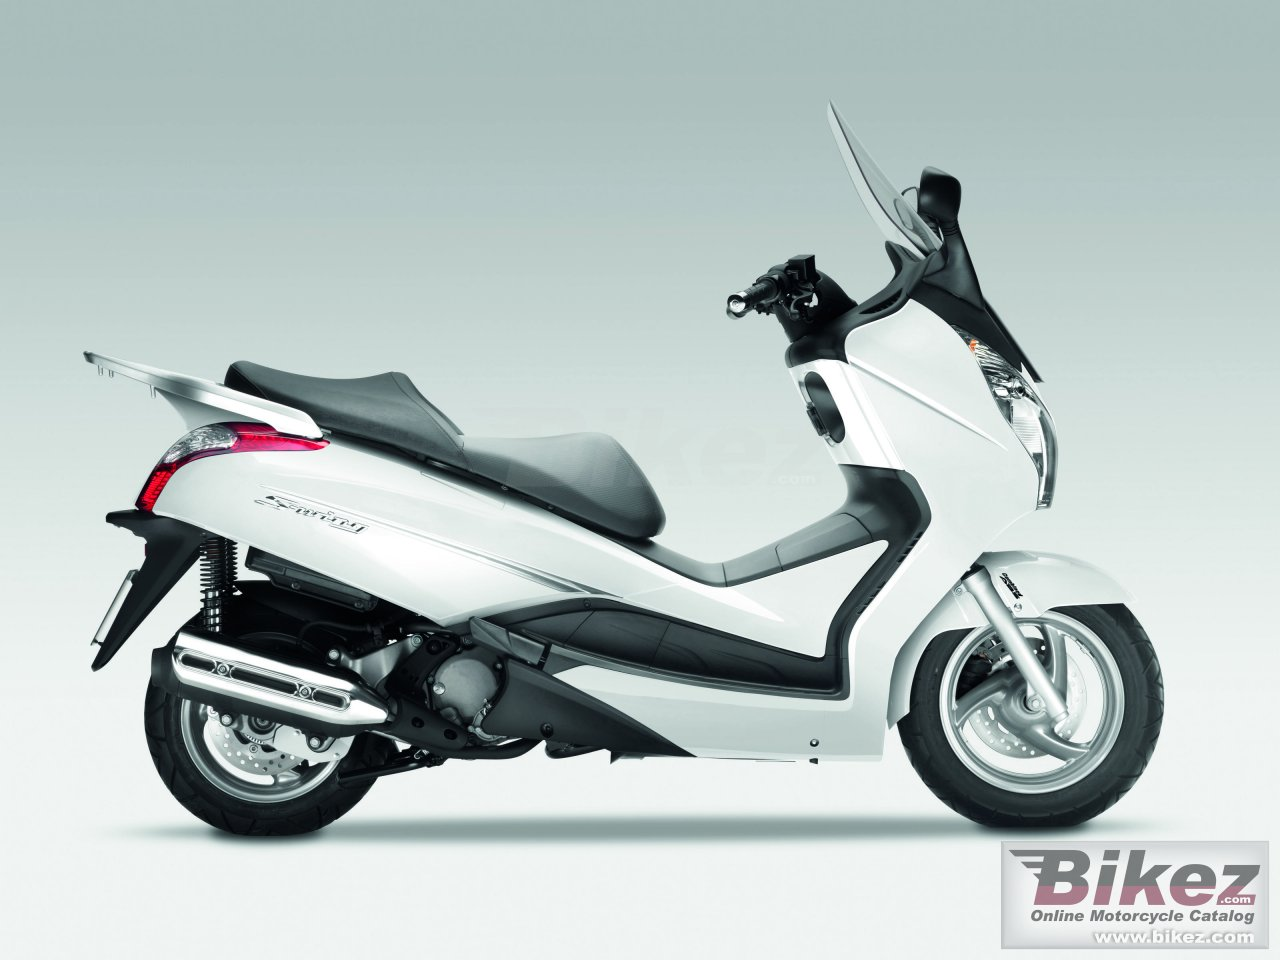 Big Honda s-wing 125 picture and wallpaper from Bikez.com